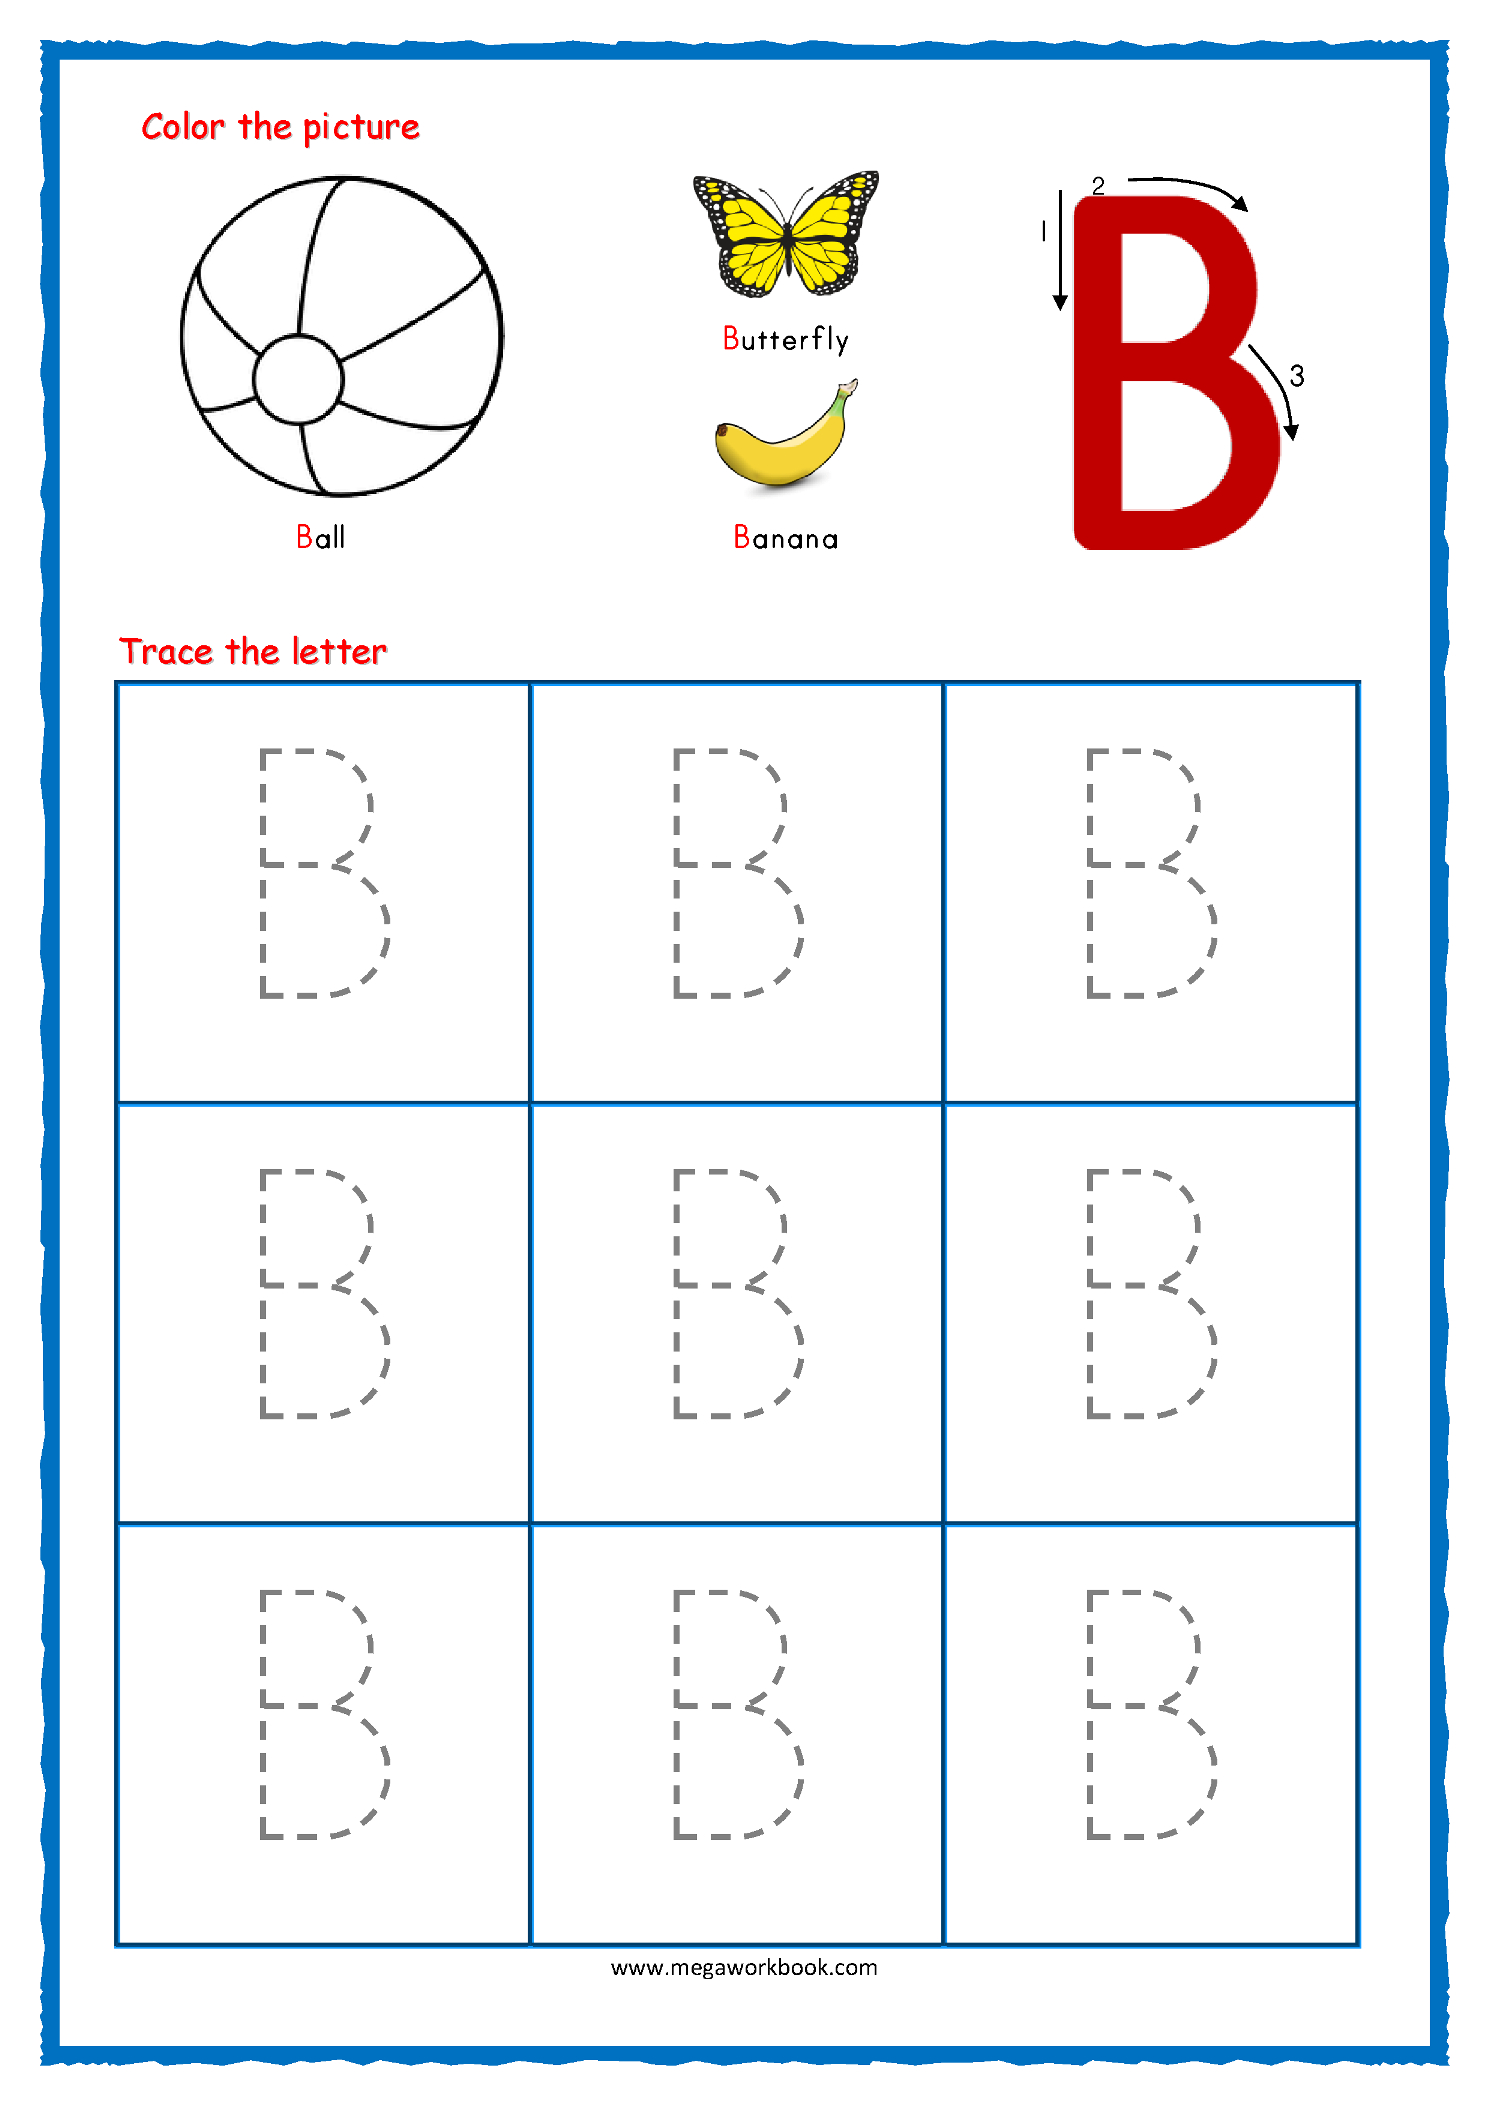 Tracing Letters - Alphabet Tracing - Capital Letters with regard to Alphabet Tracing And Writing Worksheets Pdf